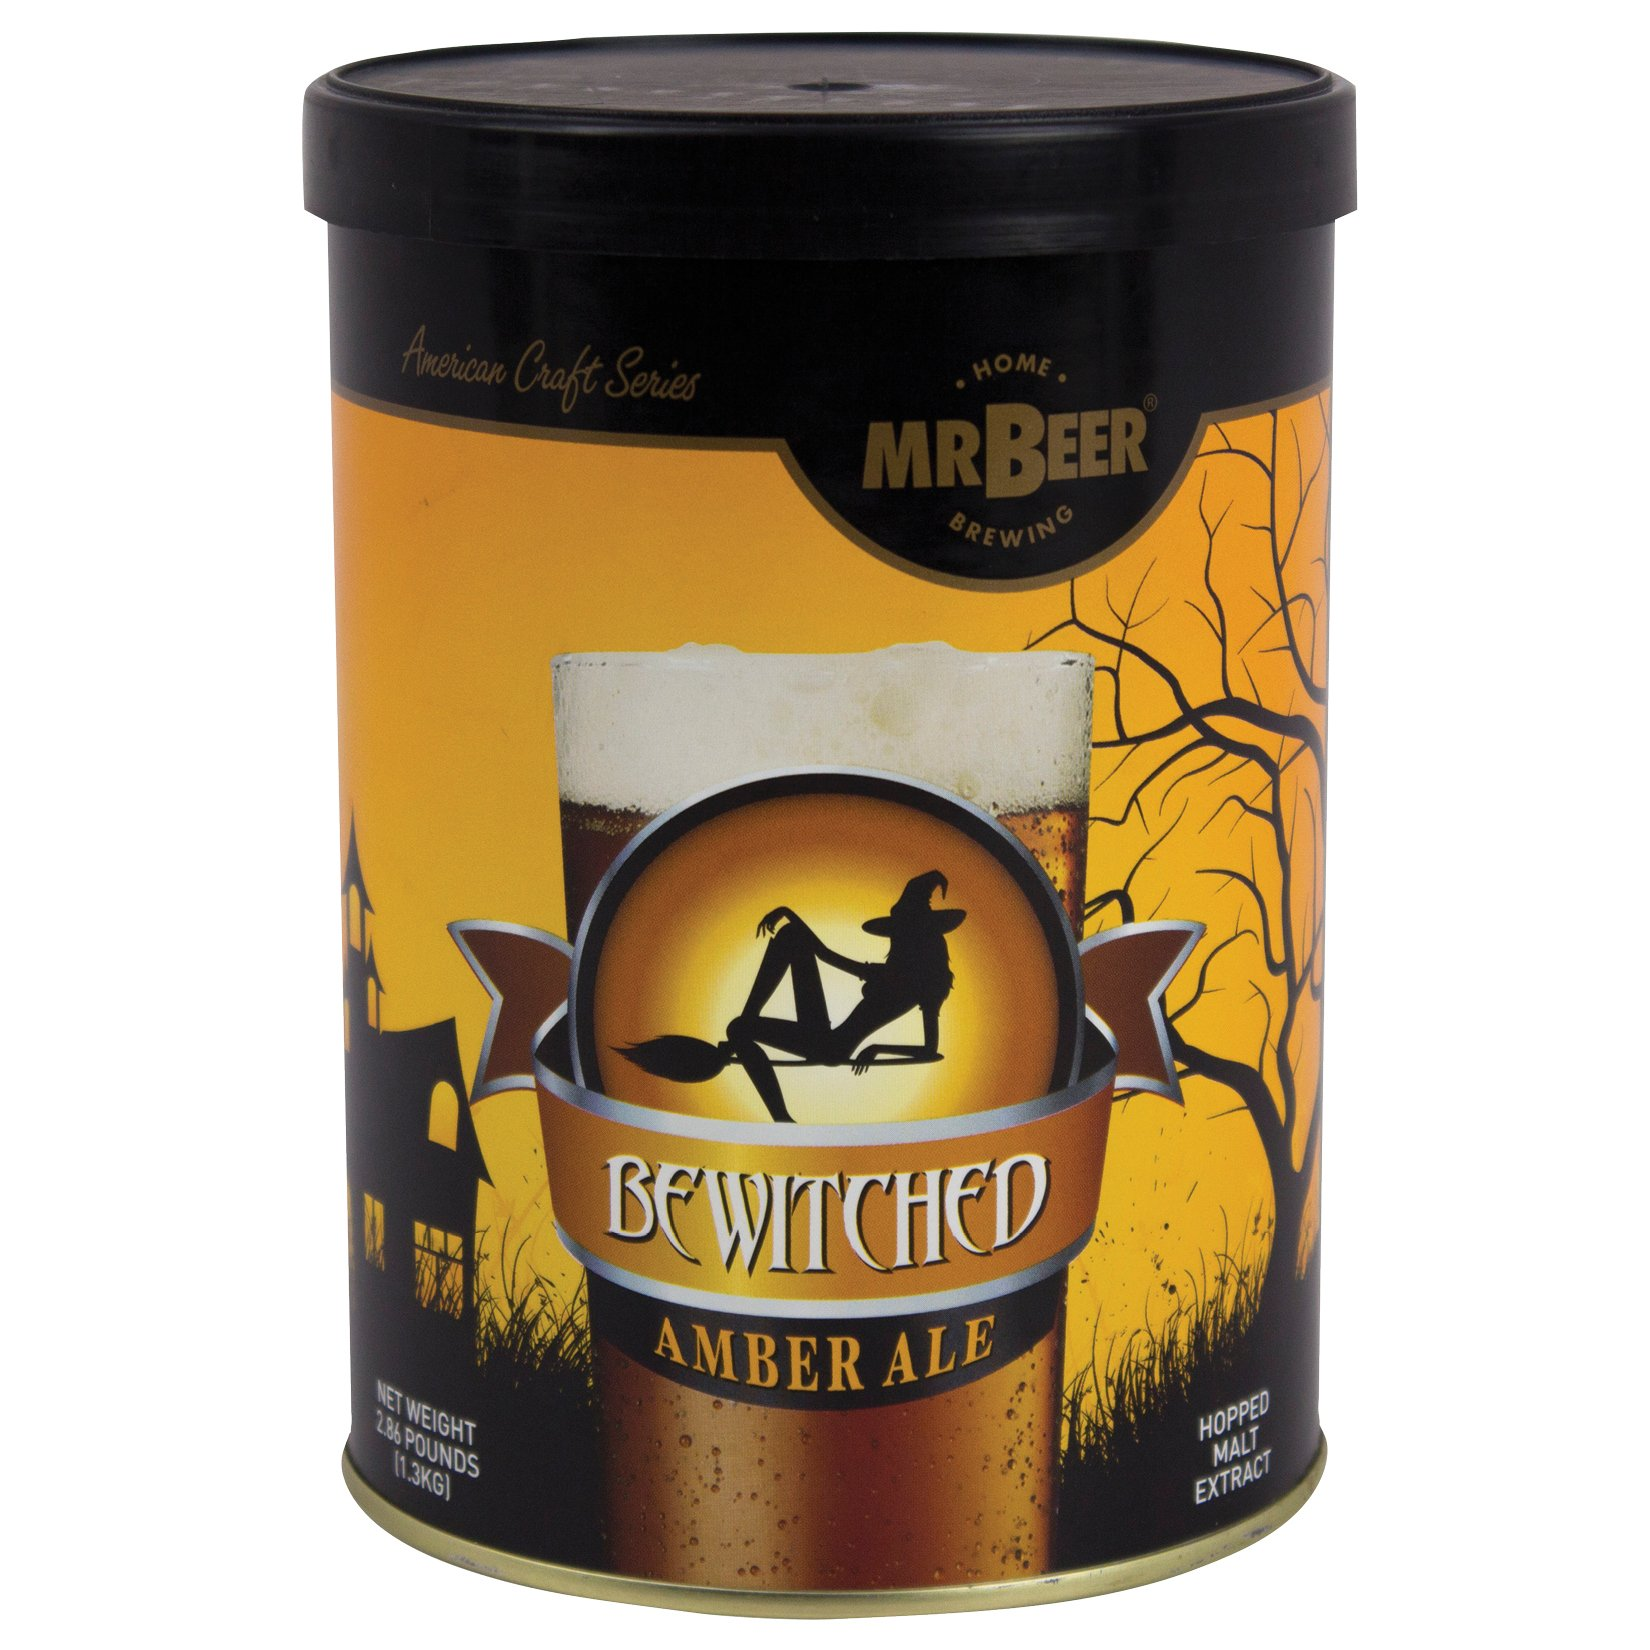 Mr. Beer Bewitched Amber Ale 2 Gallon Homebrewing Craft Beer Making Refill Kit with Sanitizer, Yeast and All Grain Brewing Extract